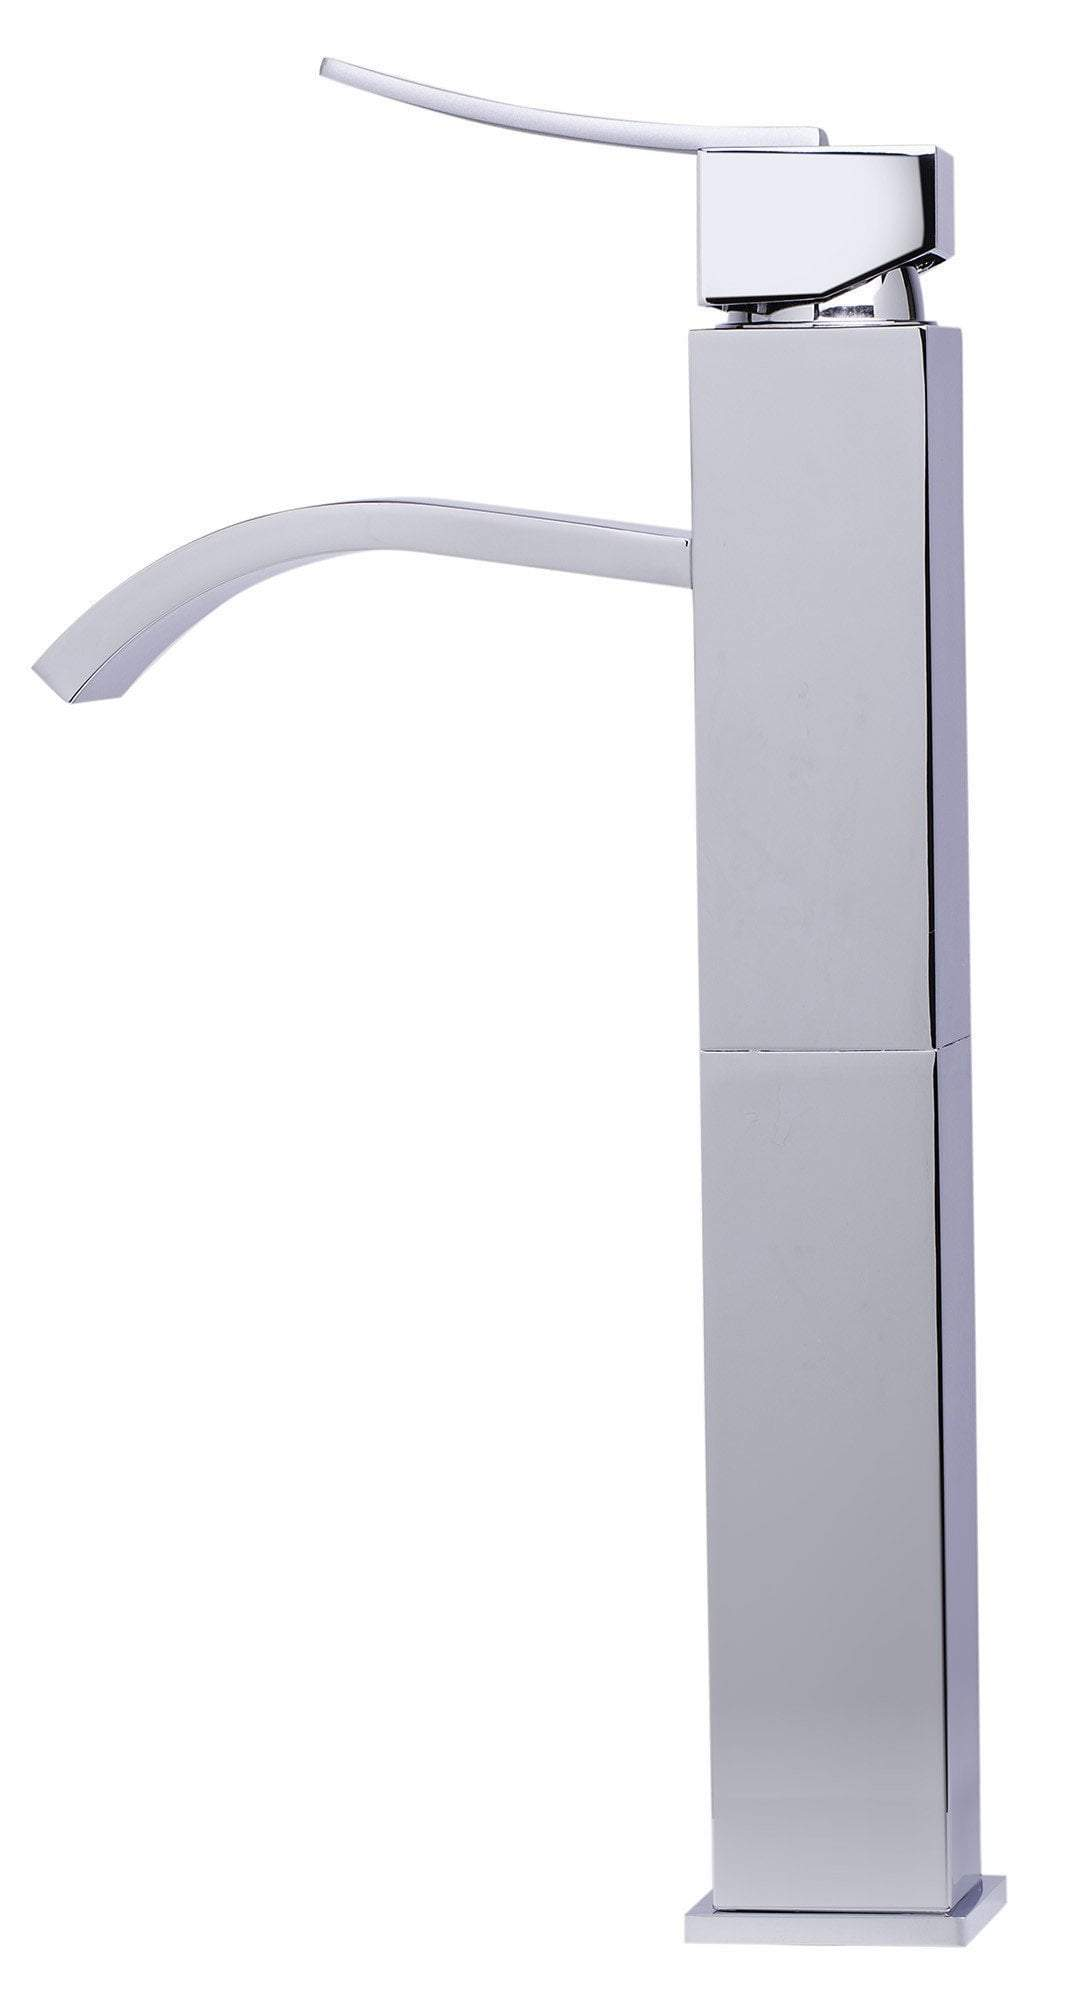 alfi tall polished chrome tall square body curved spout single lever bathroom faucet ab1158 pc